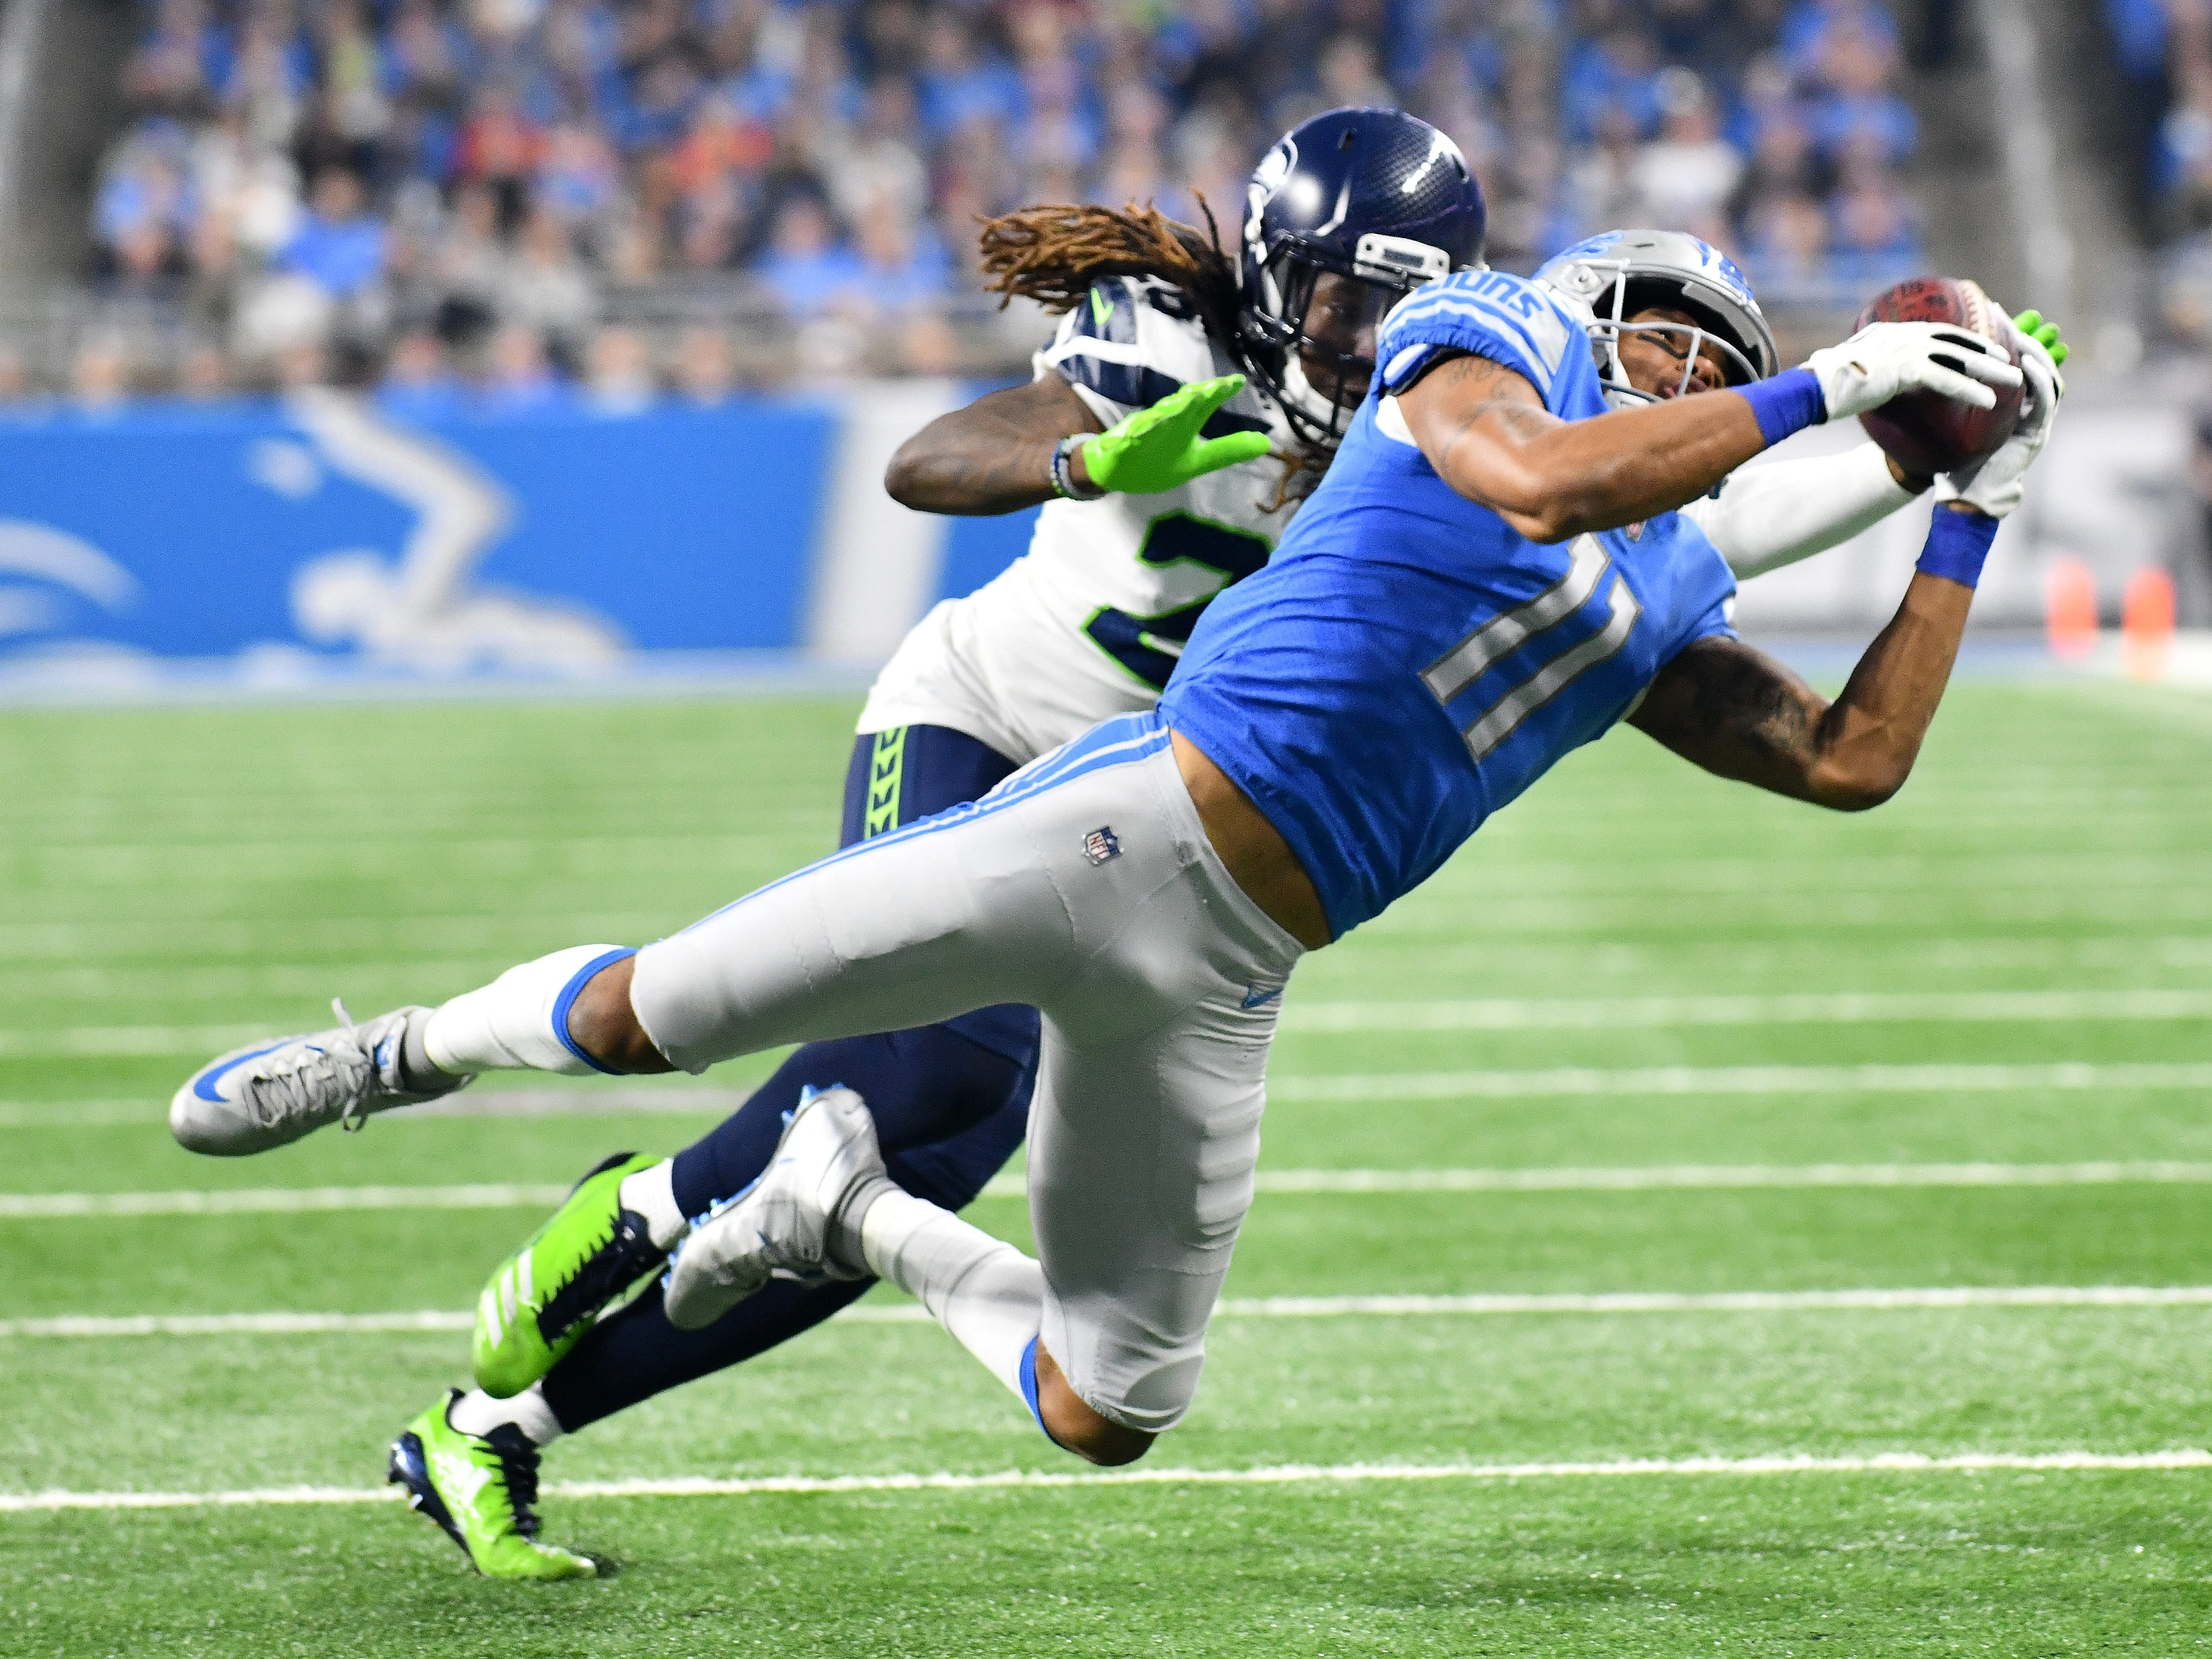 Lions wide receiver Marvin Jones Jr. pulls in a tough reception in front of Seahawks' Justin Coleman in the third quarter.